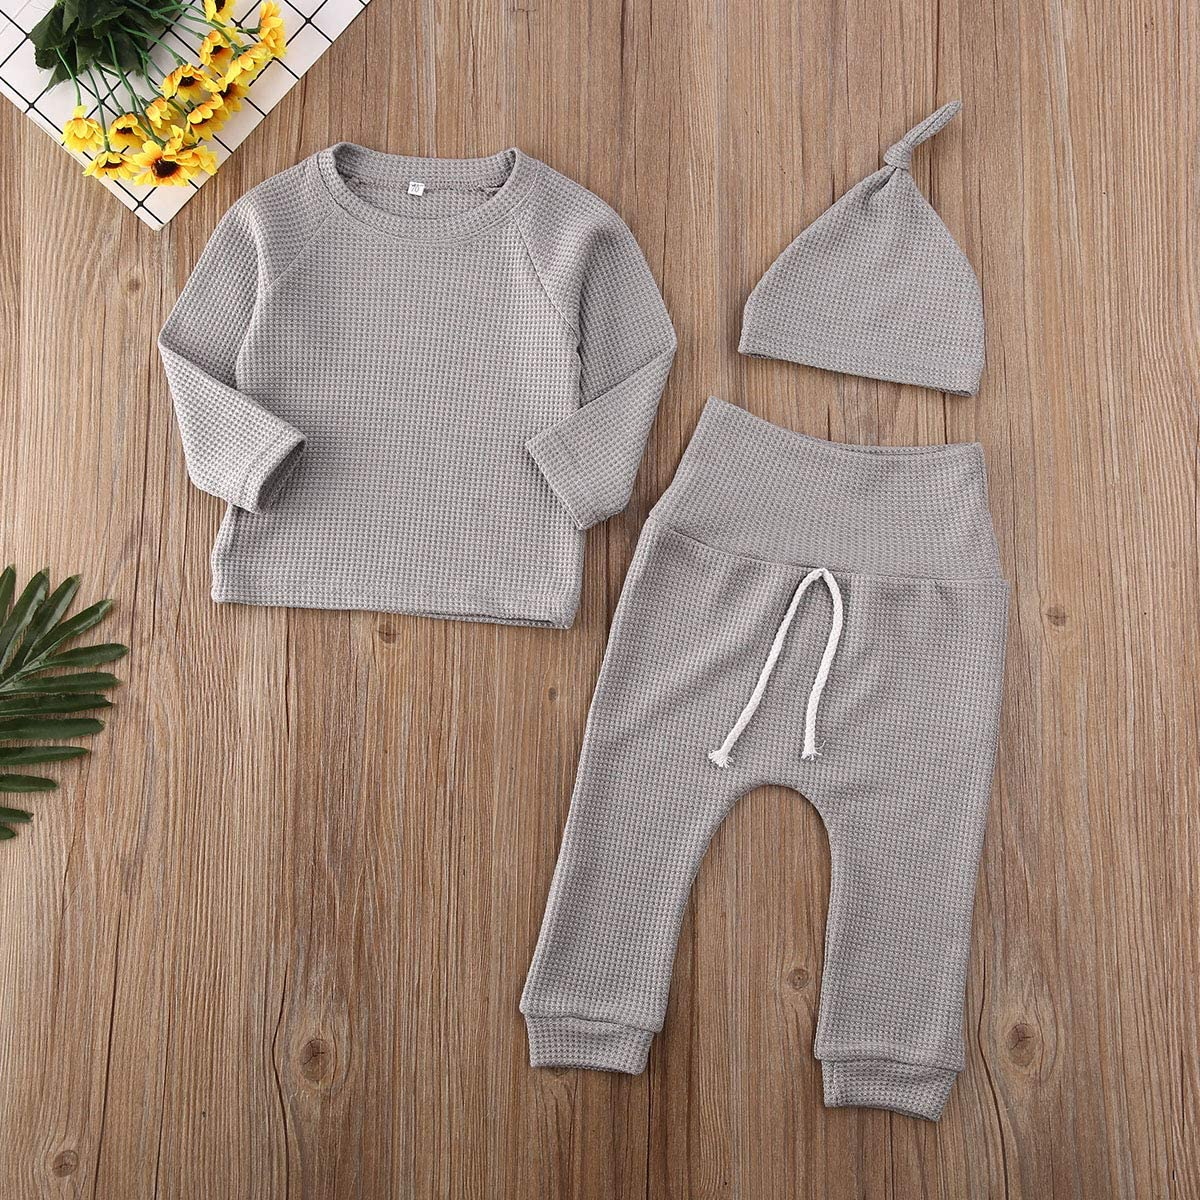 Pudcoco Newborn Baby Boys Girls Waffle Cotton Homewear Outfit with Hat Long Sleeve Top+Pants Pajamas Set